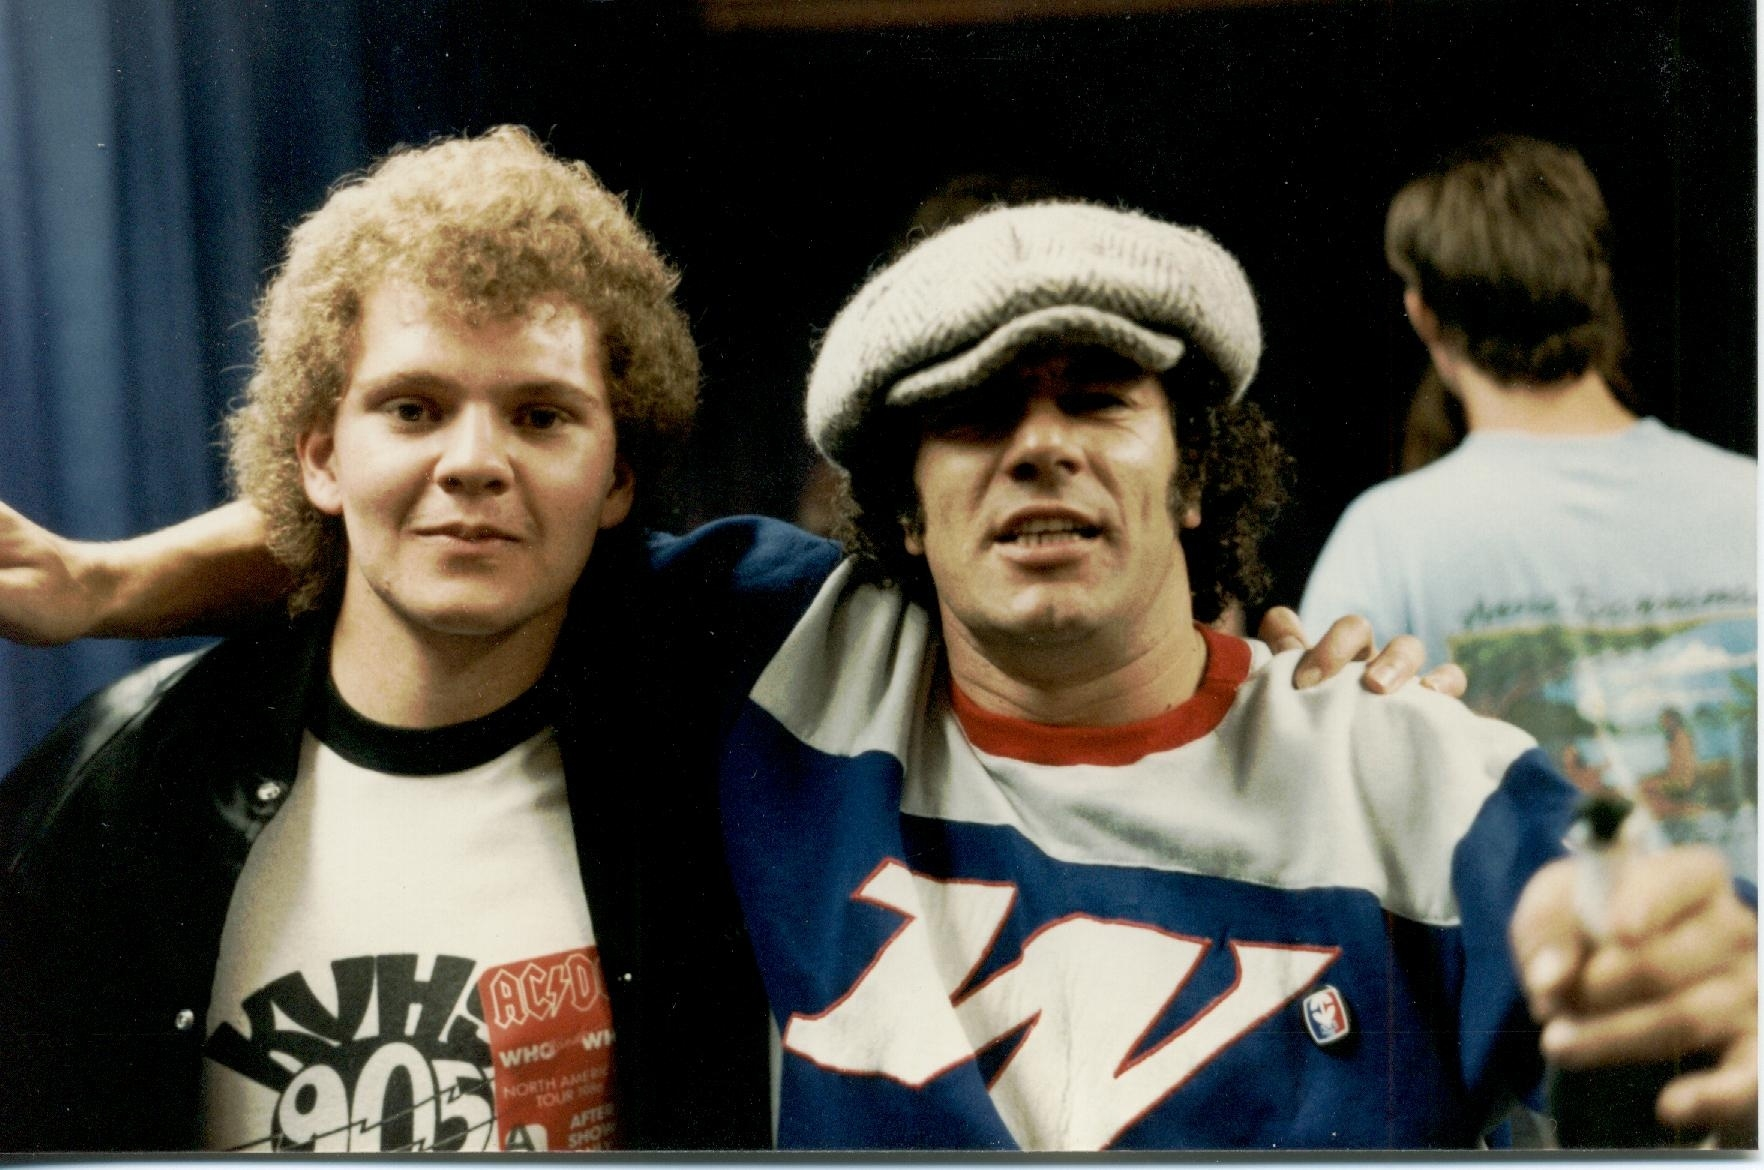 singer brian johnson of acdc and chris cady